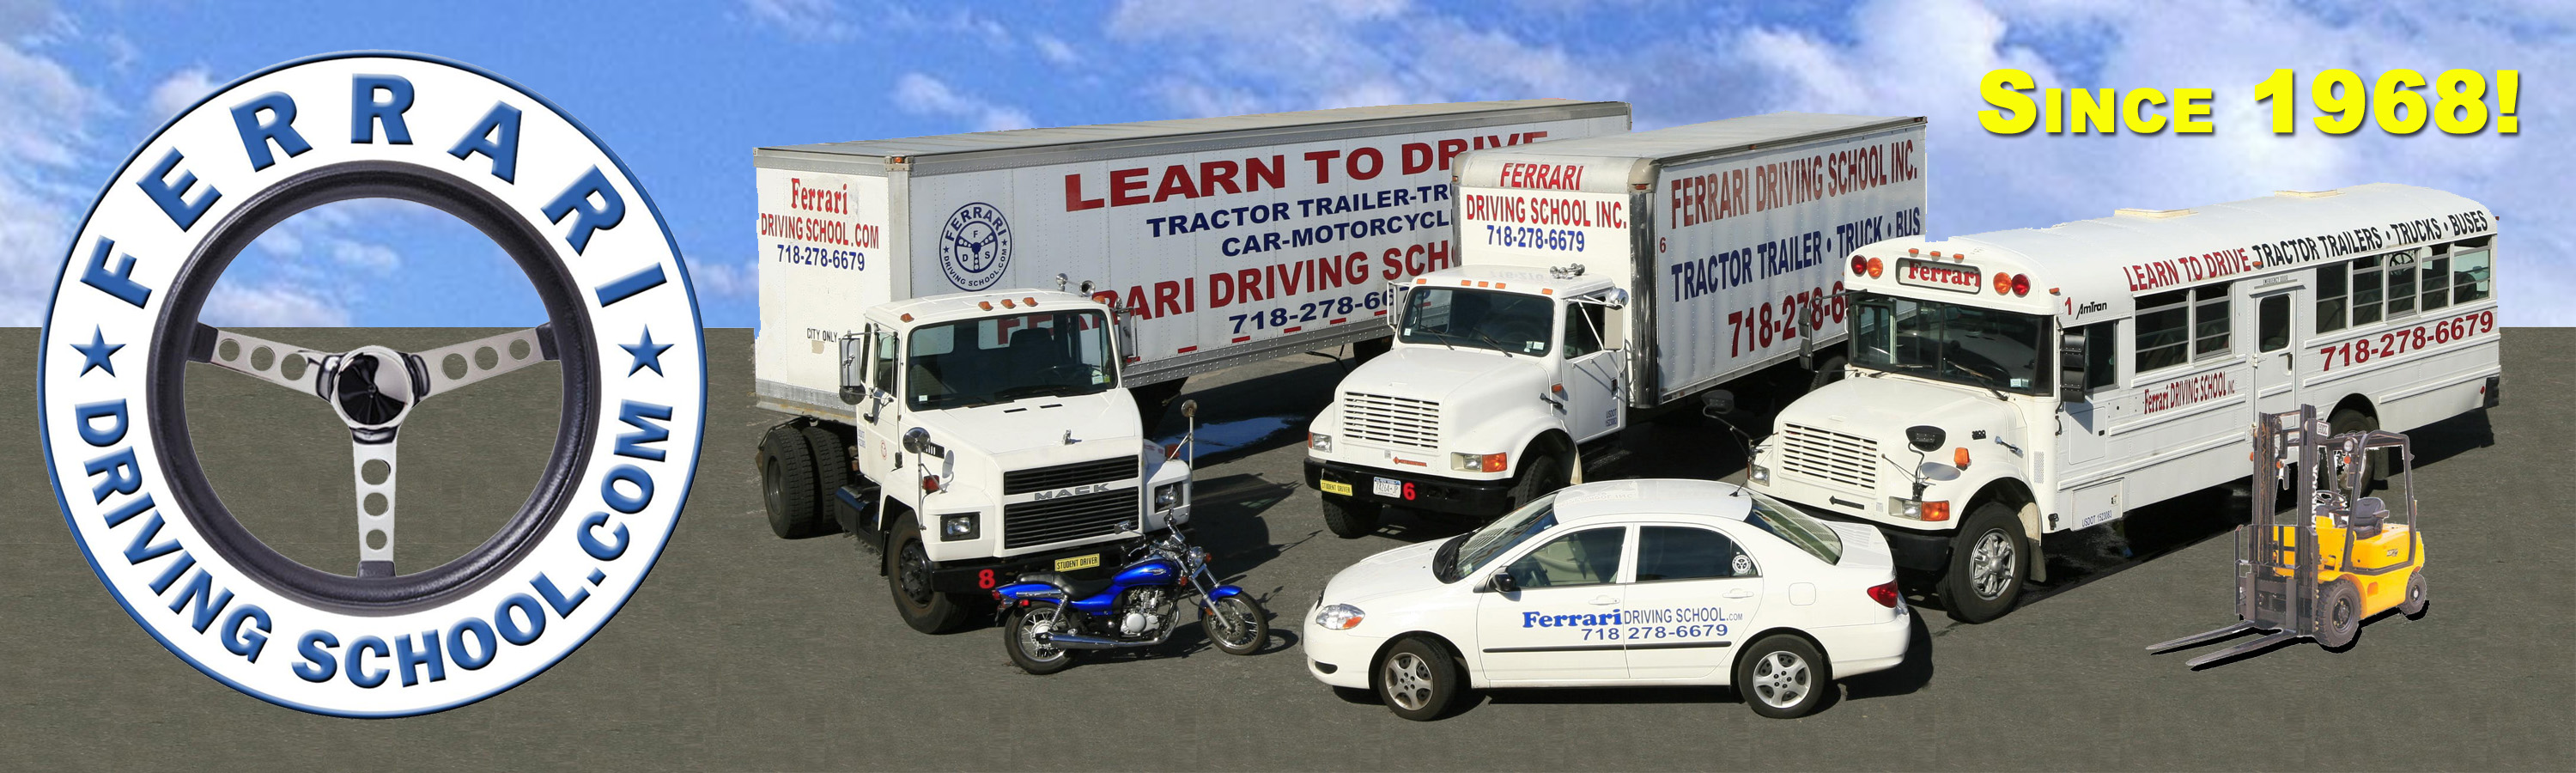 ny packages cdl us ferrari brooklyn beach mip school com mule brighton ave yp driving